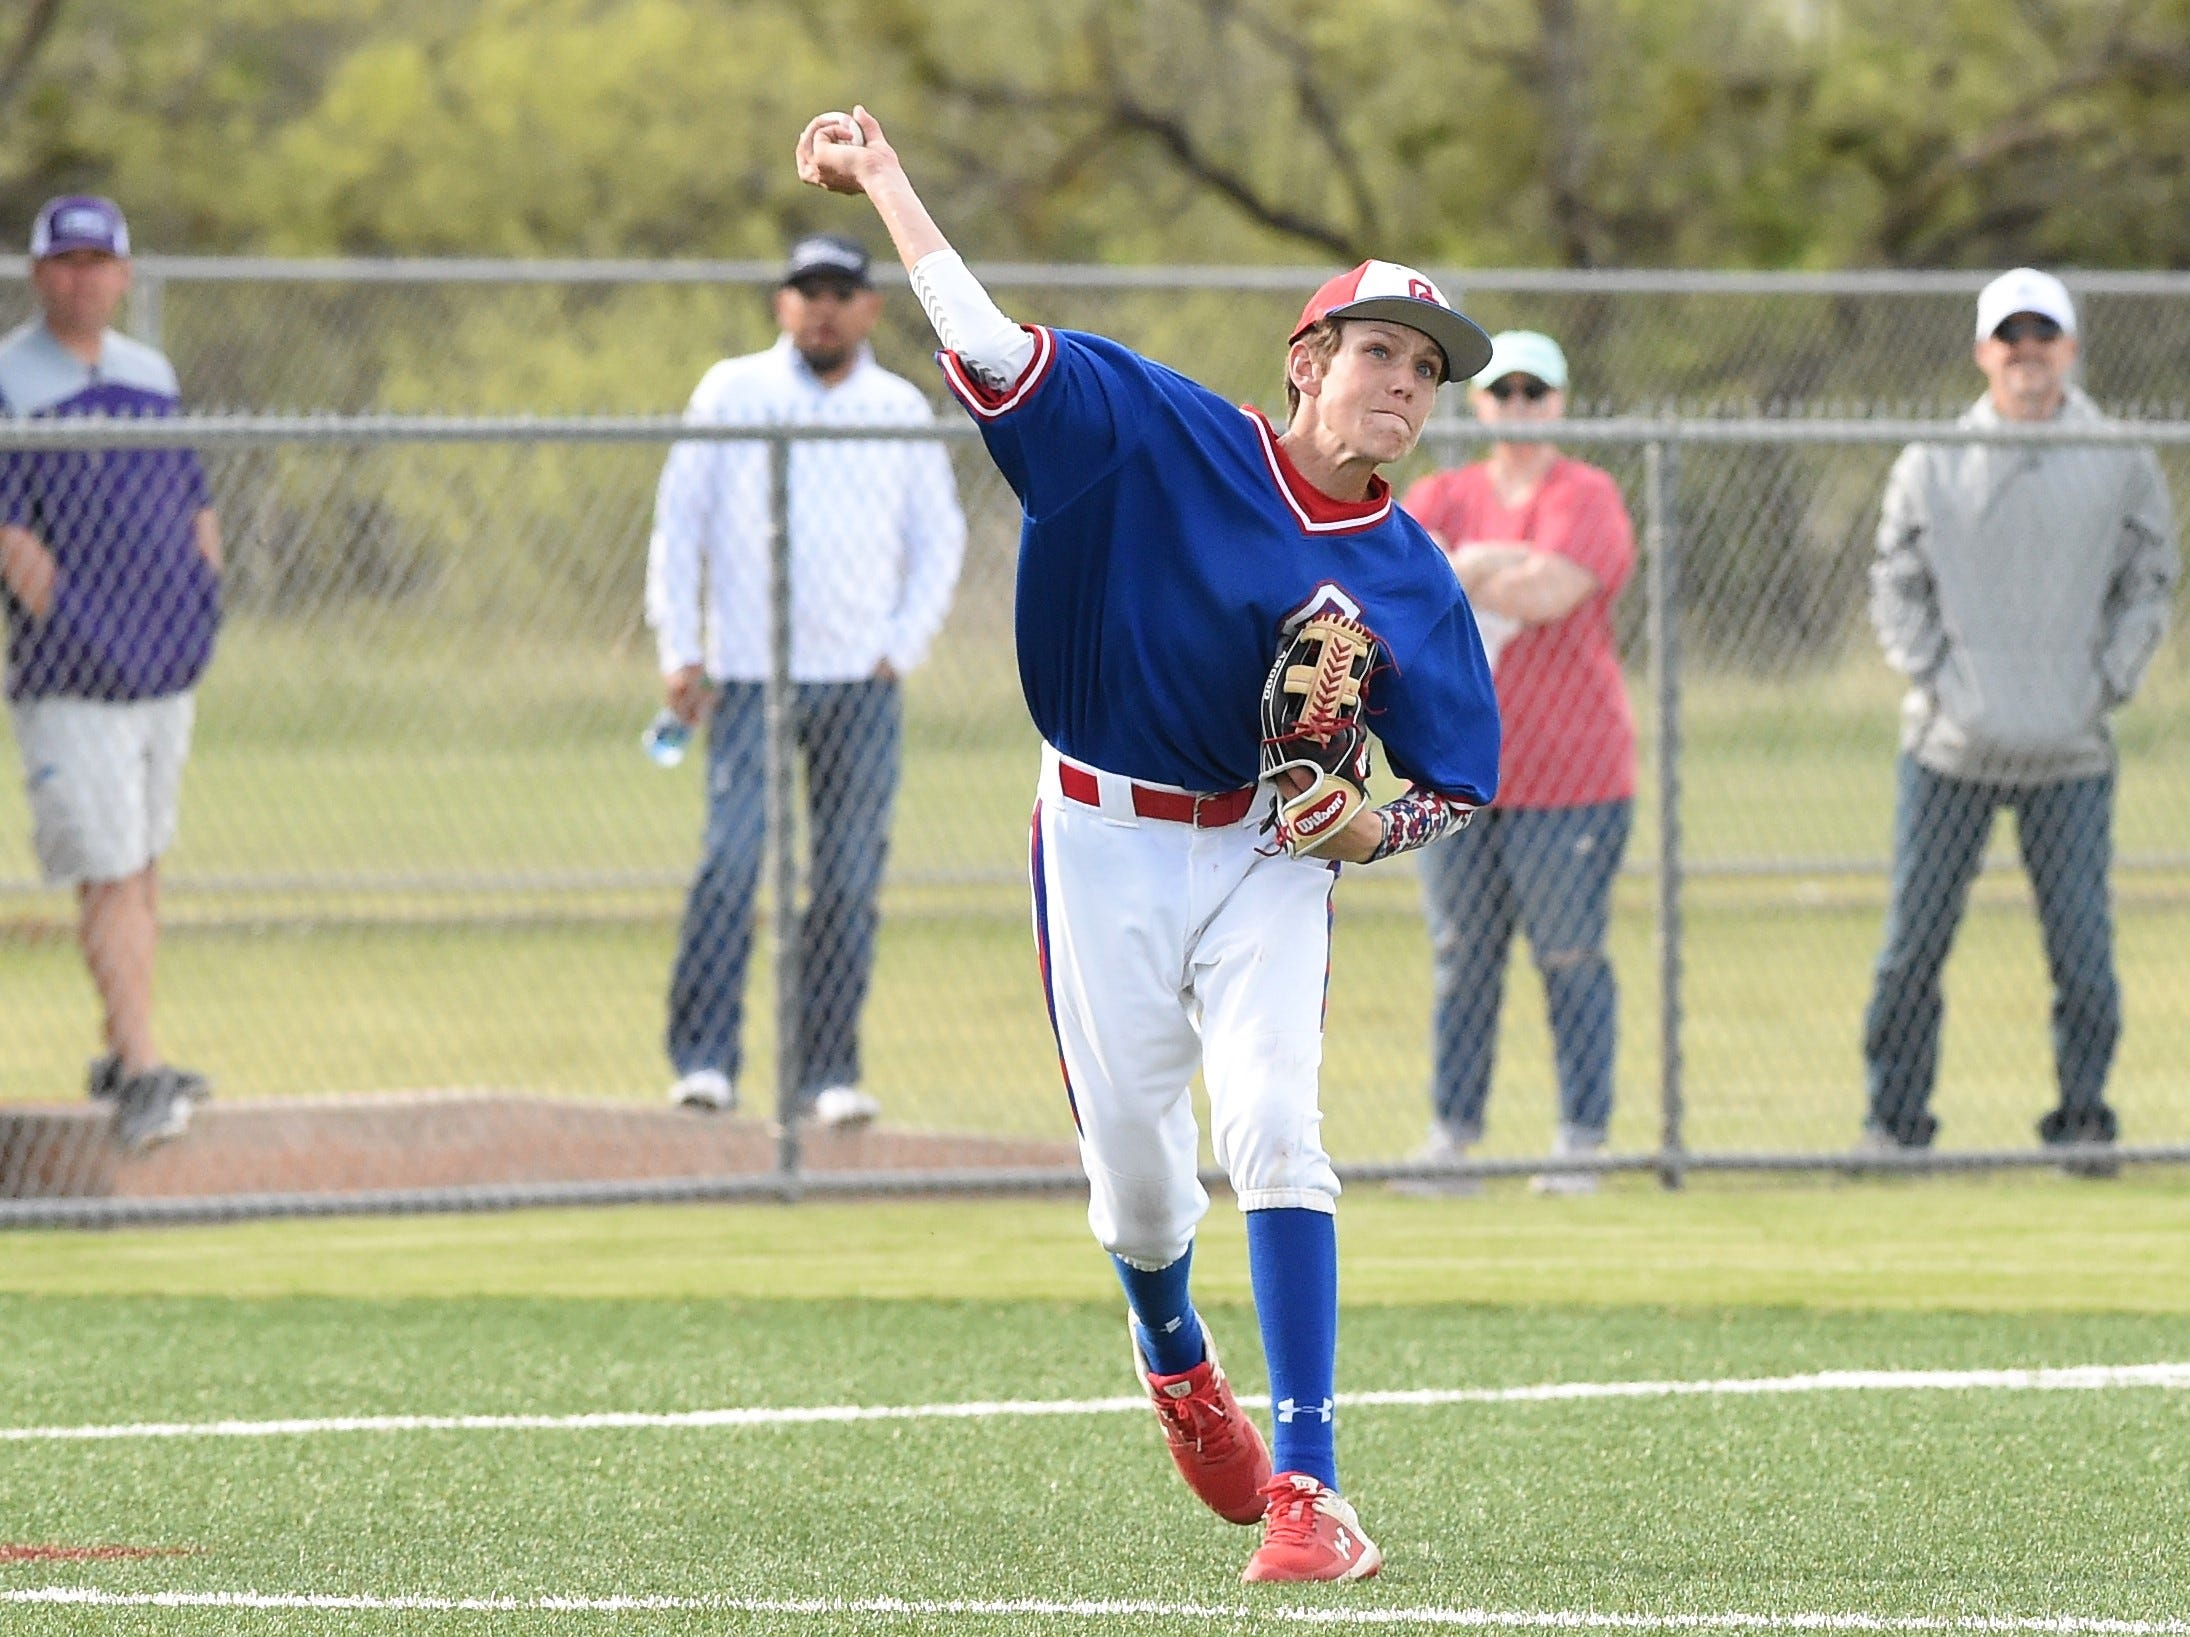 Cooper third baseman Jack Keefer (2) throws to first for an out against Wylie at Bulldog Field on Friday, April 12, 2019. The Cougars fell 4-3.